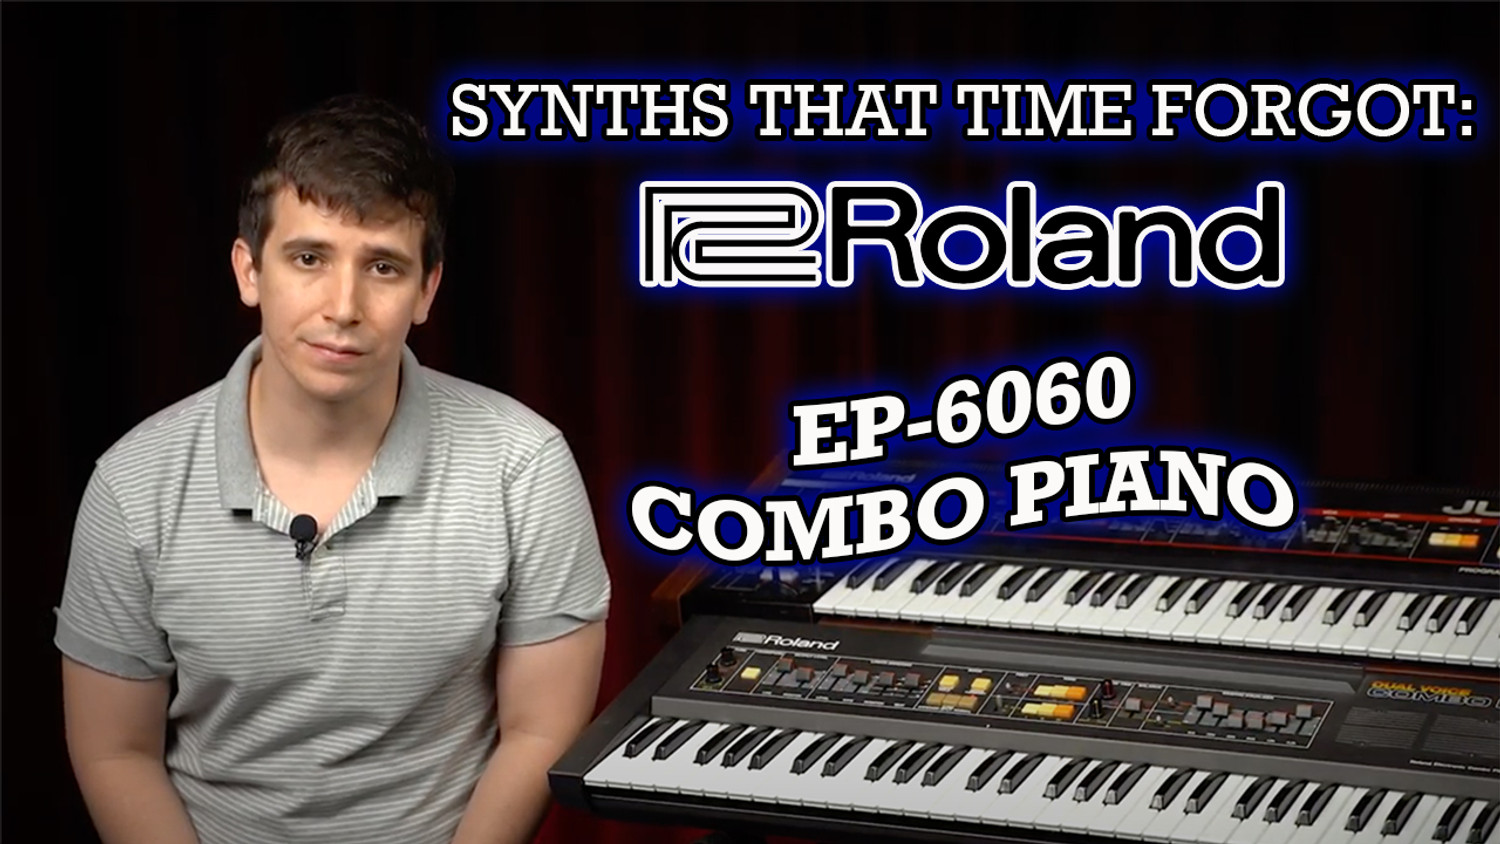 Roland EP-6060 Combo Piano: The Synths That Time Forgot